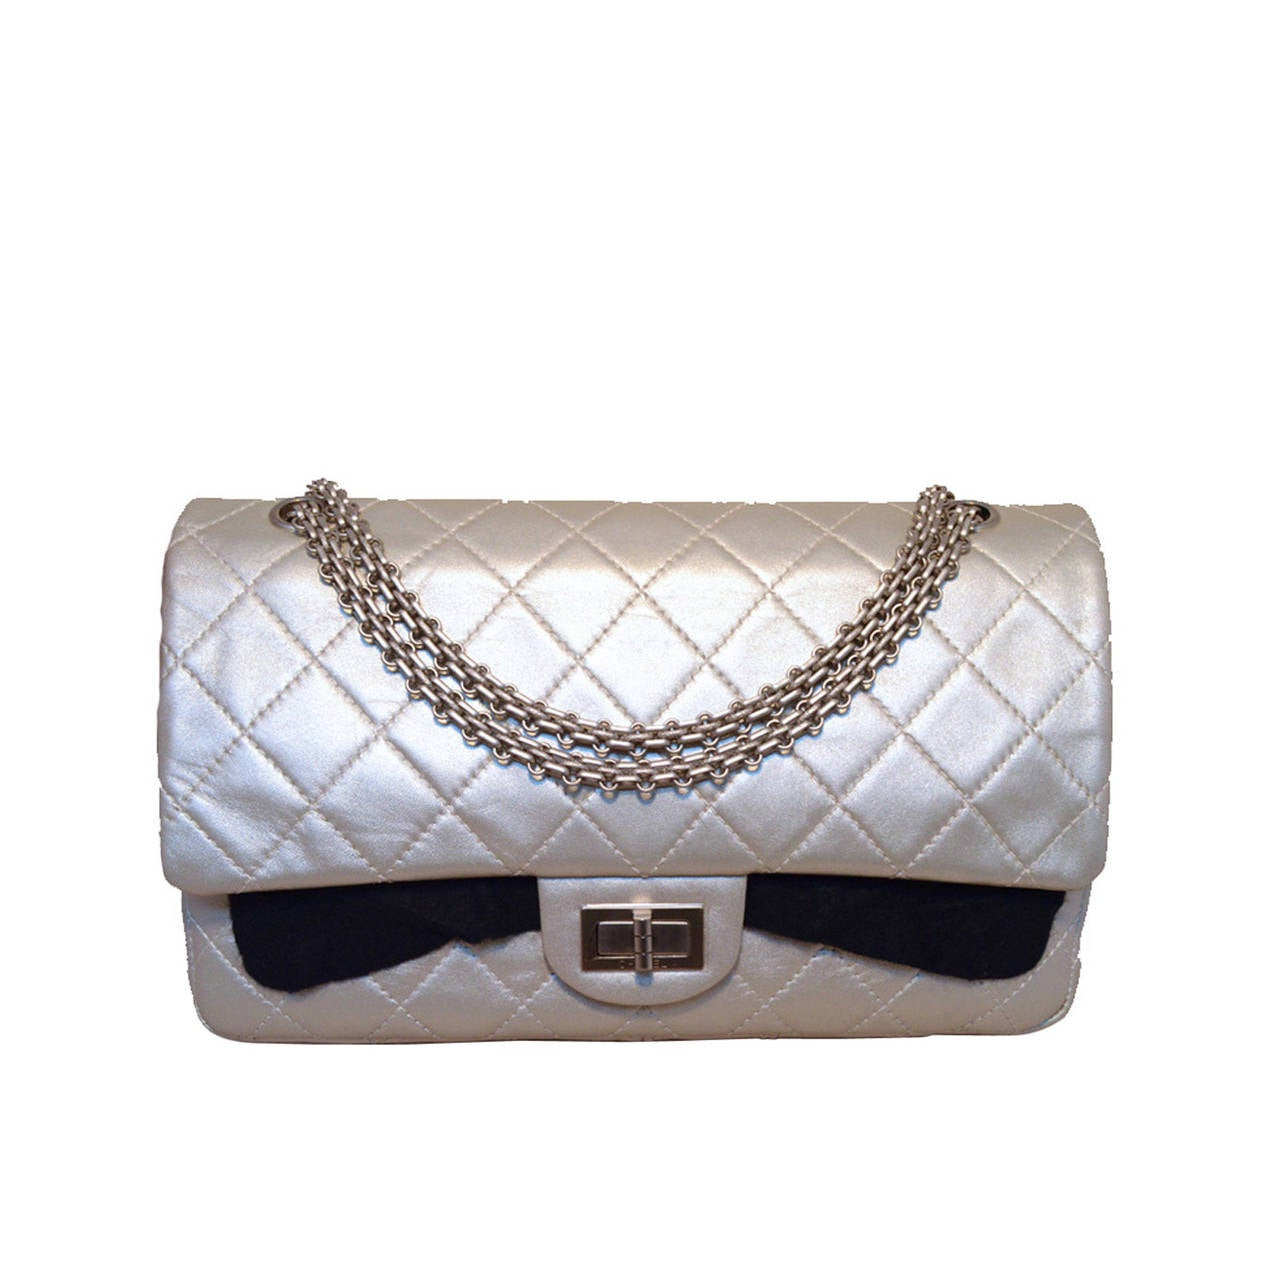 Chanel Silver Leather Jumbo 2.55 Double Flap Classic Shoulder Bag 1